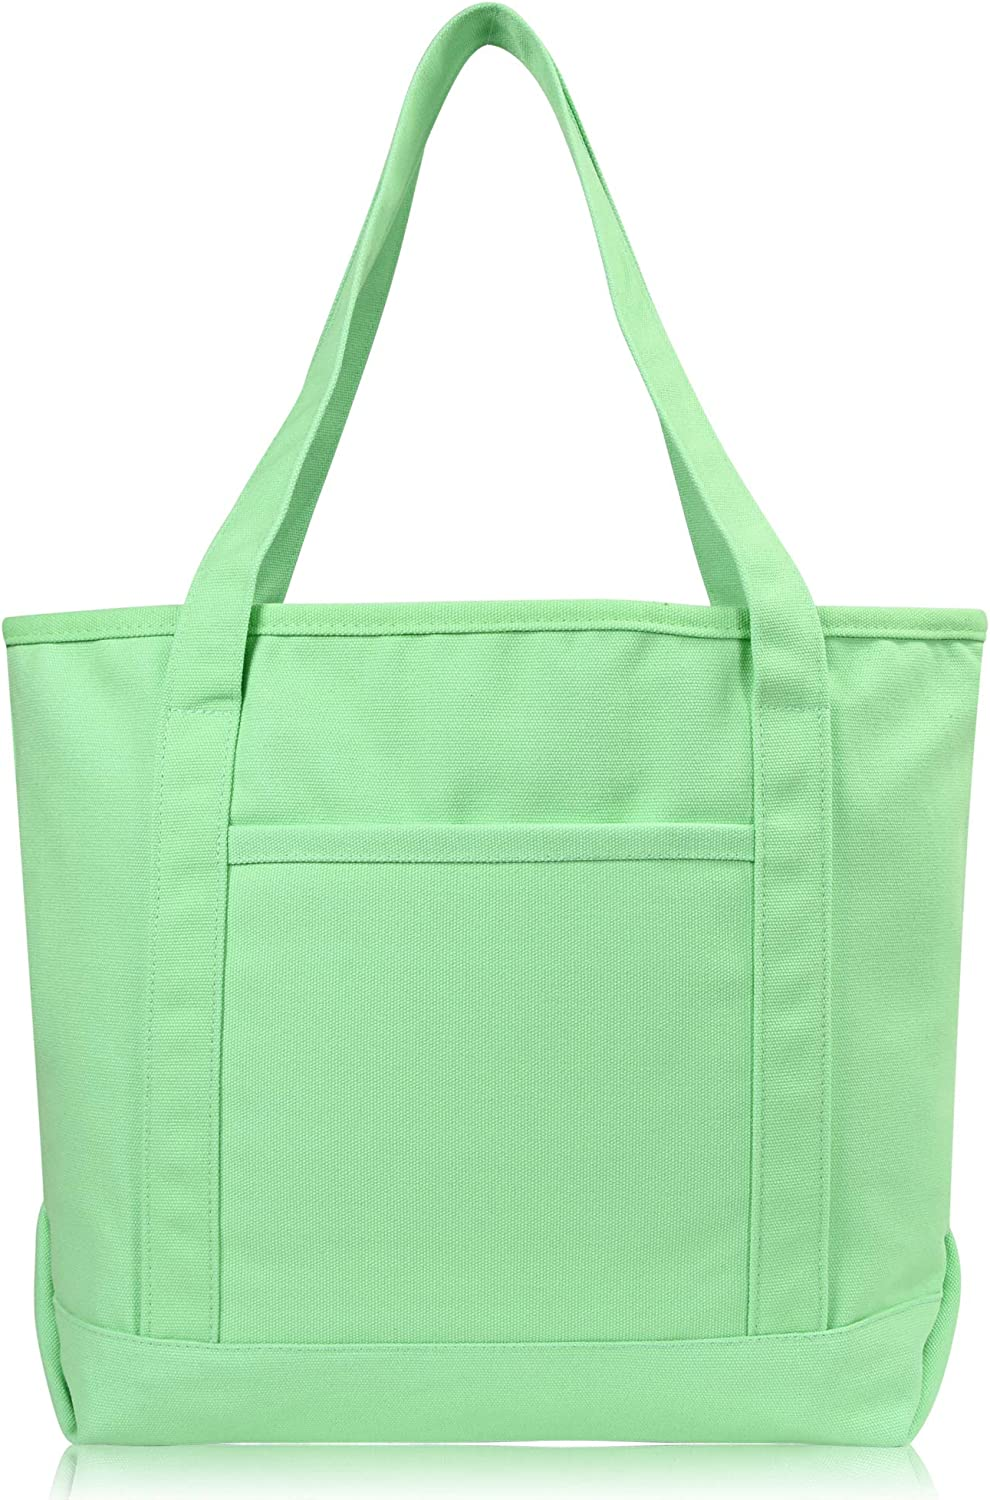 """DALIX 20"""" Solid Color Cotton Canvas Shopping Tote Bag in Mint Green"""